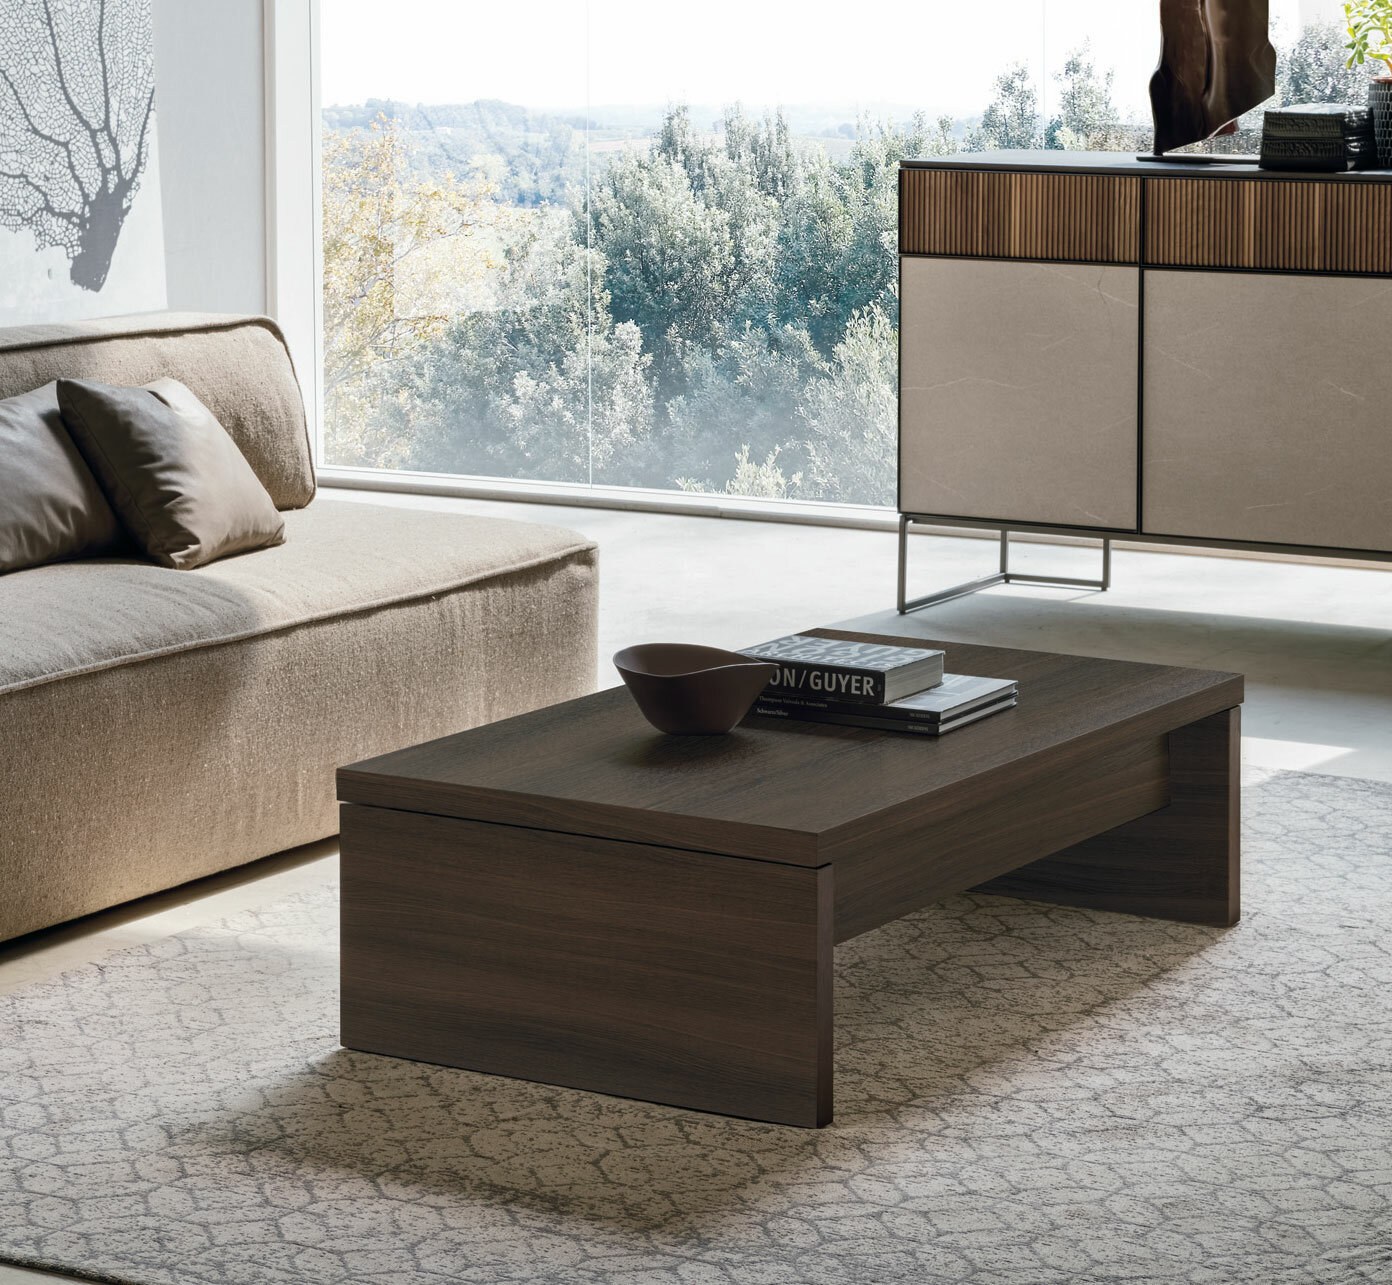 Yumanmod Cosmo Lift Top Extendable Sled Coffee Table With Storage Wayfair